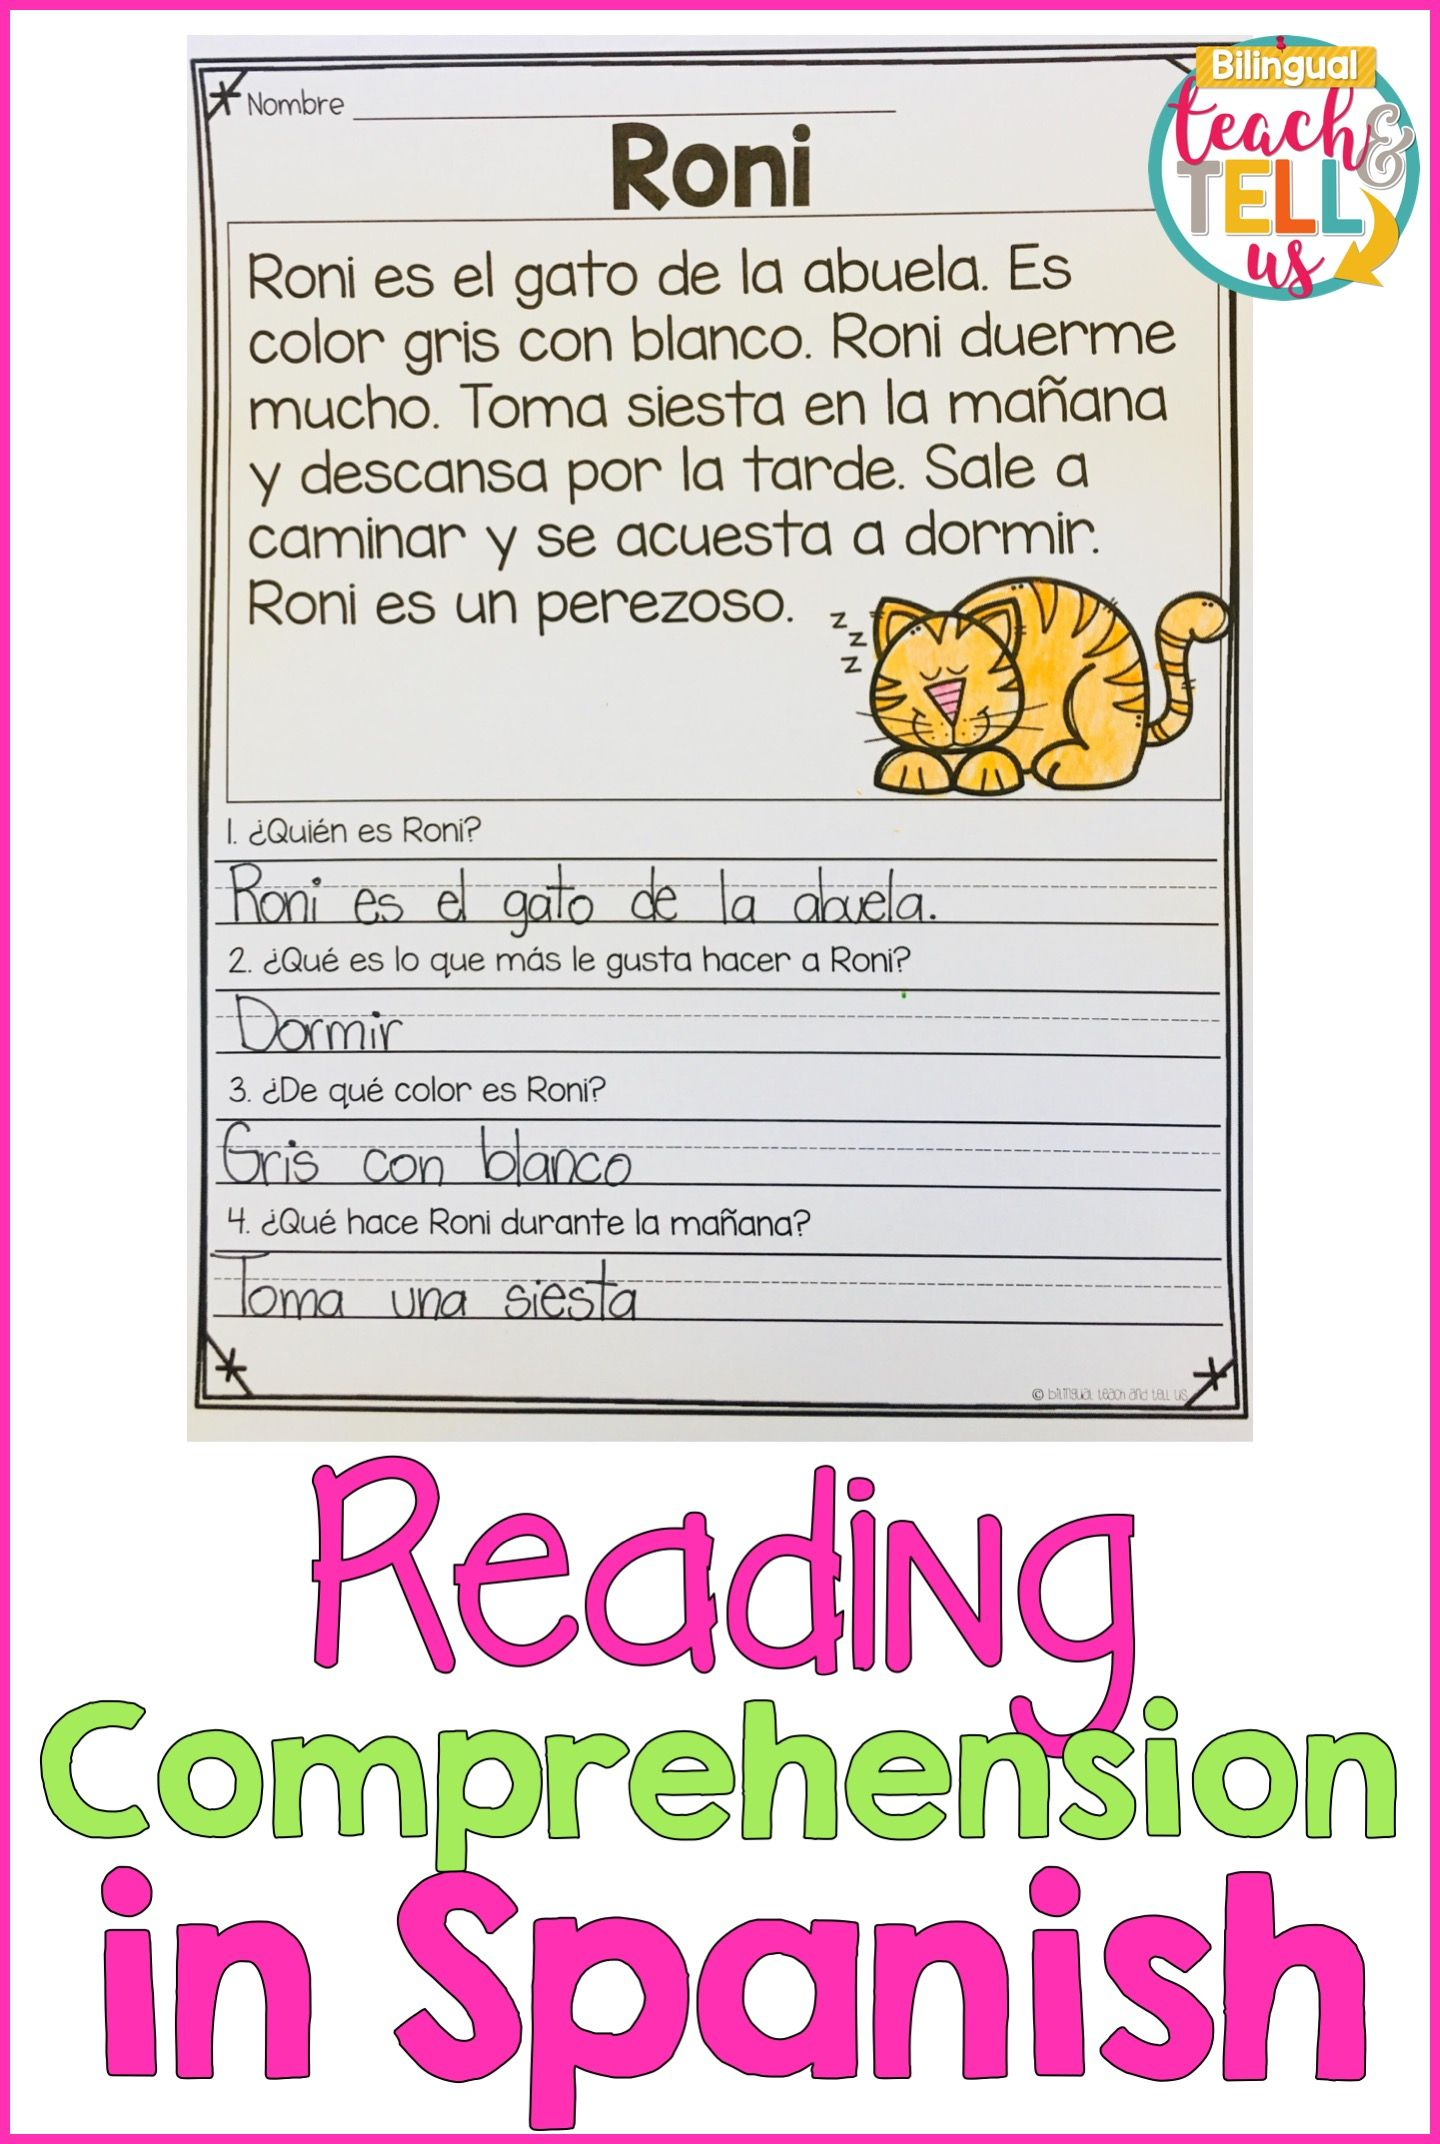 Reading Comprehension Passages In Spanish For First Grade Studen First Grade Reading Comprehension Spanish Reading Comprehension Reading Comprehension Passages